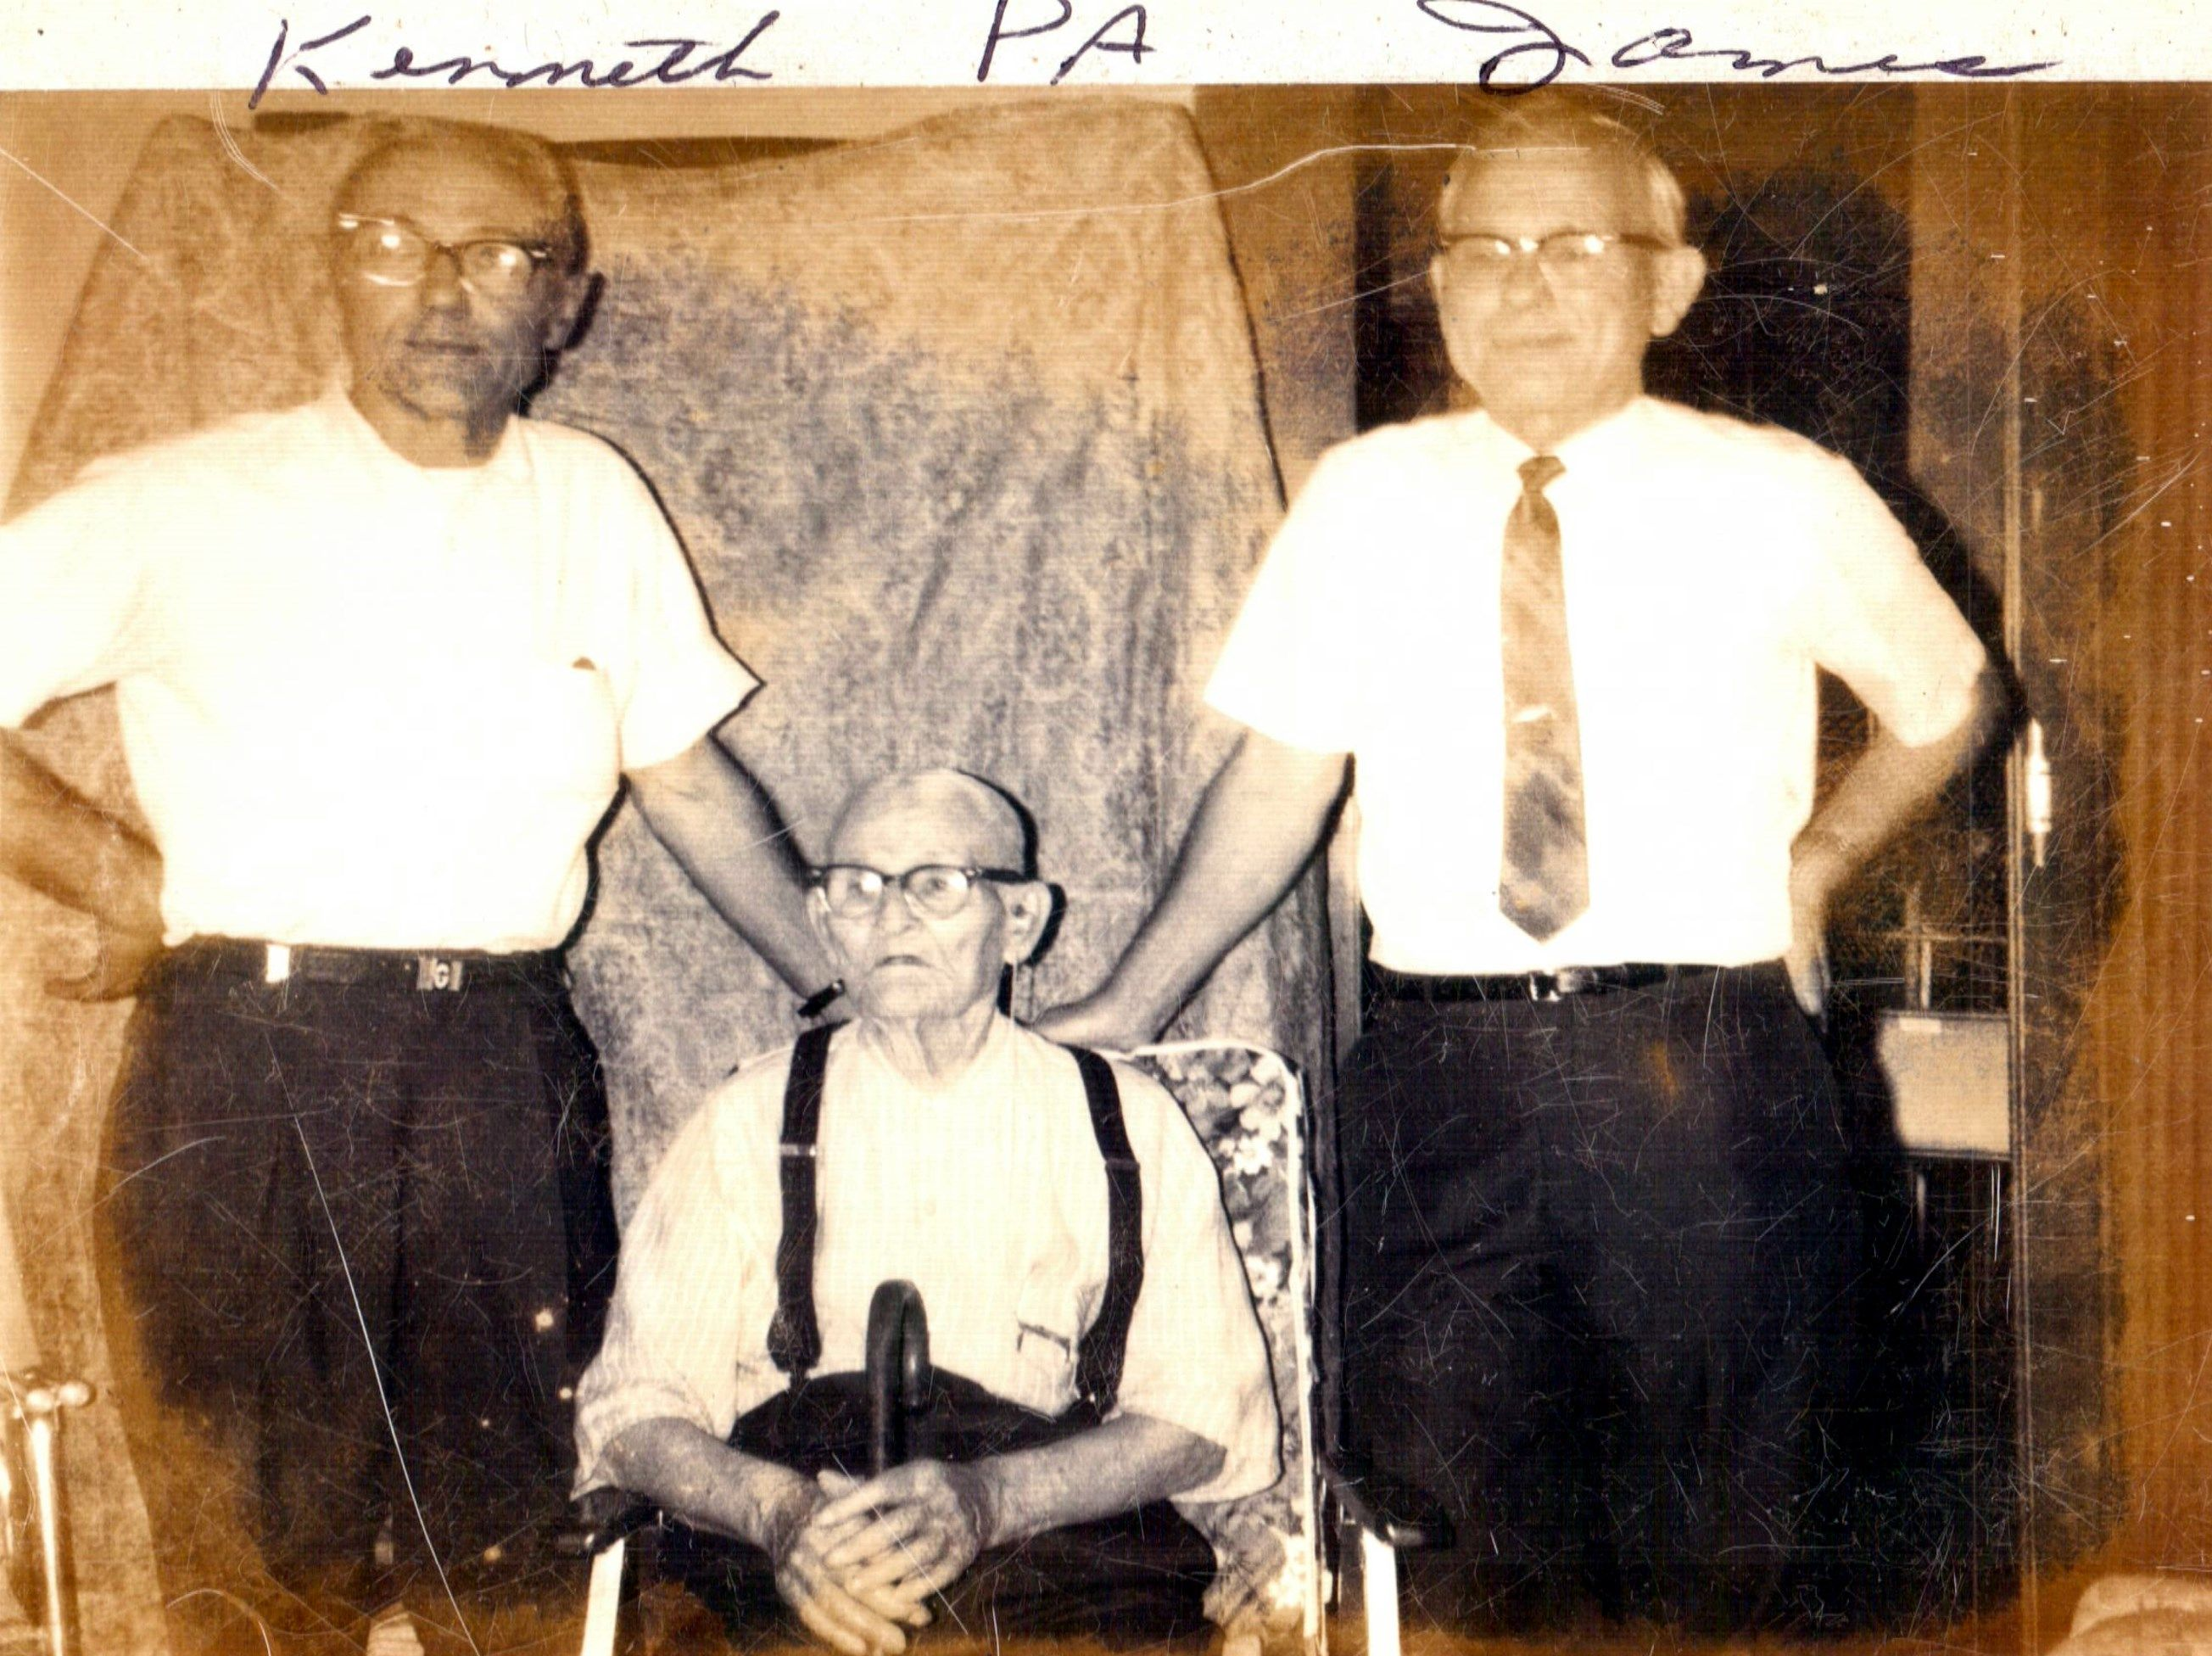 Prince Albert Leckbee Center With His Sons Kenneth And James Prince Albert Was 90 When He Died He Was A Man Of Short Stature But Had Prince Albert Geneology